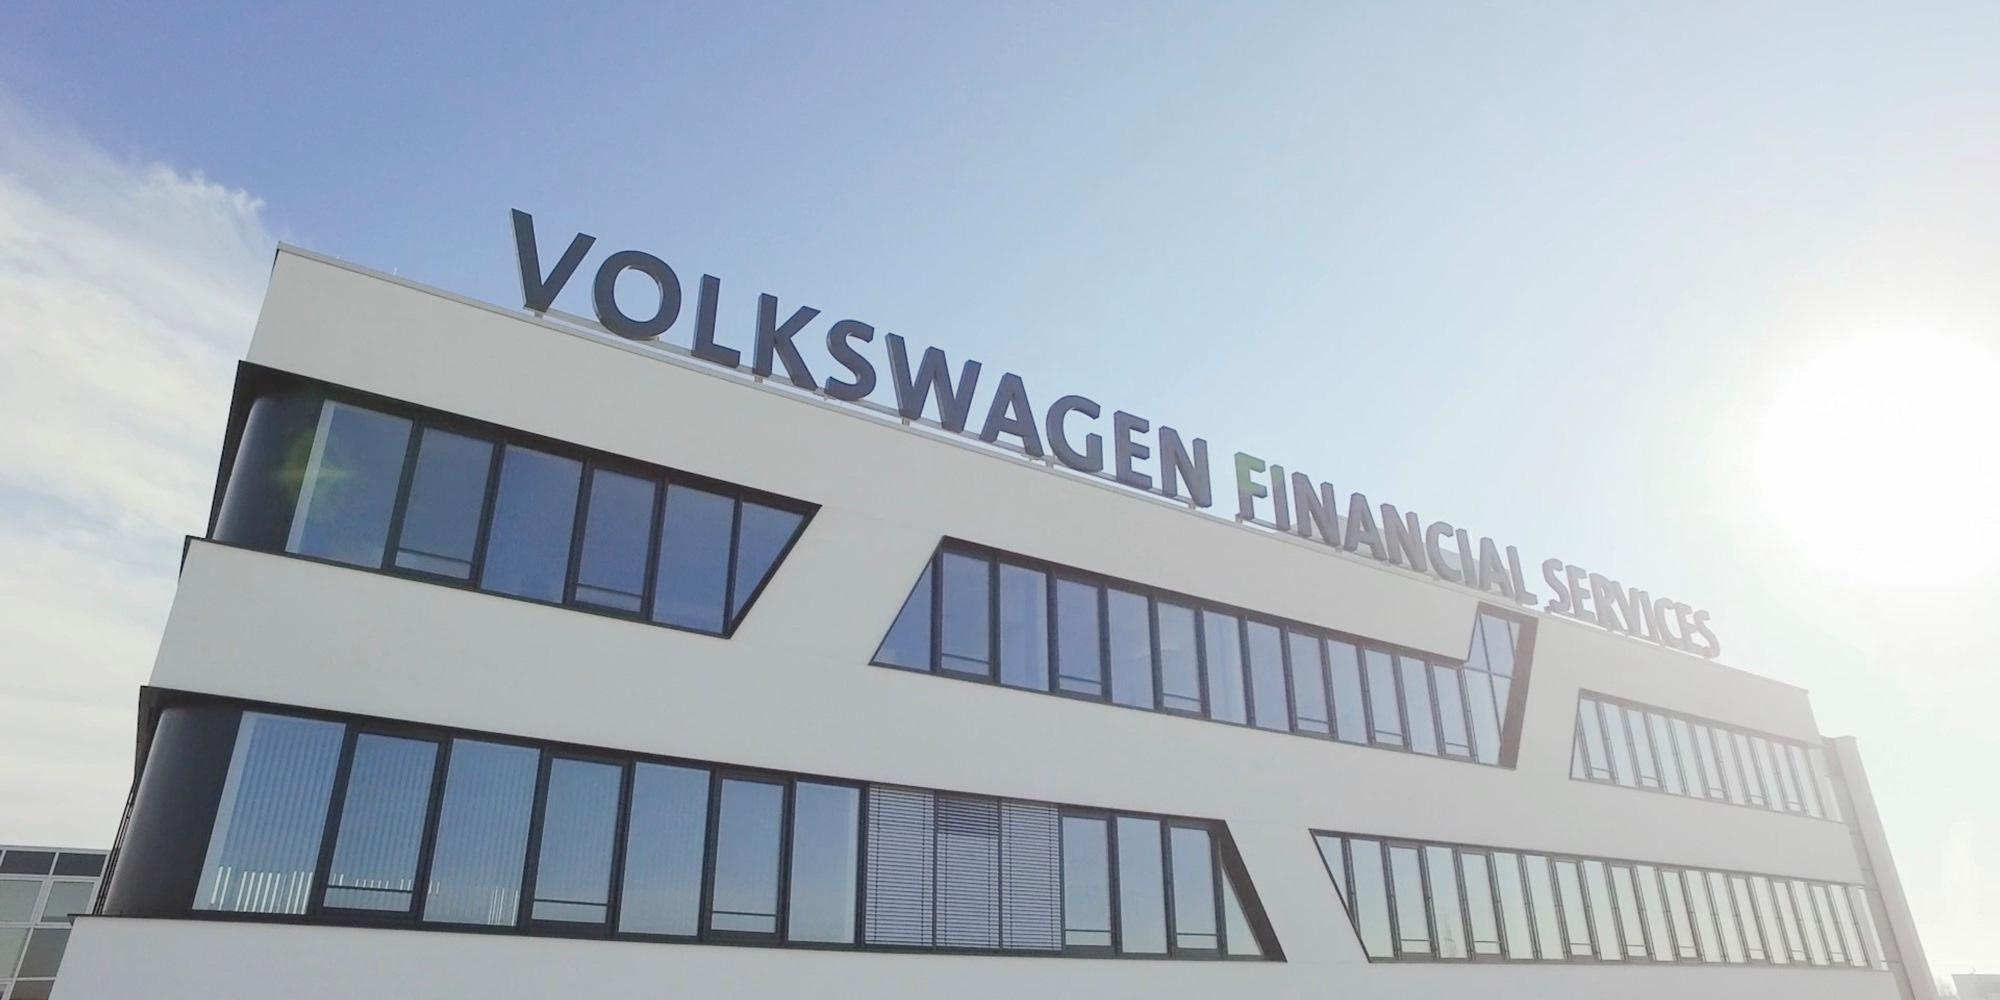 Volkswagen Financial Services Building